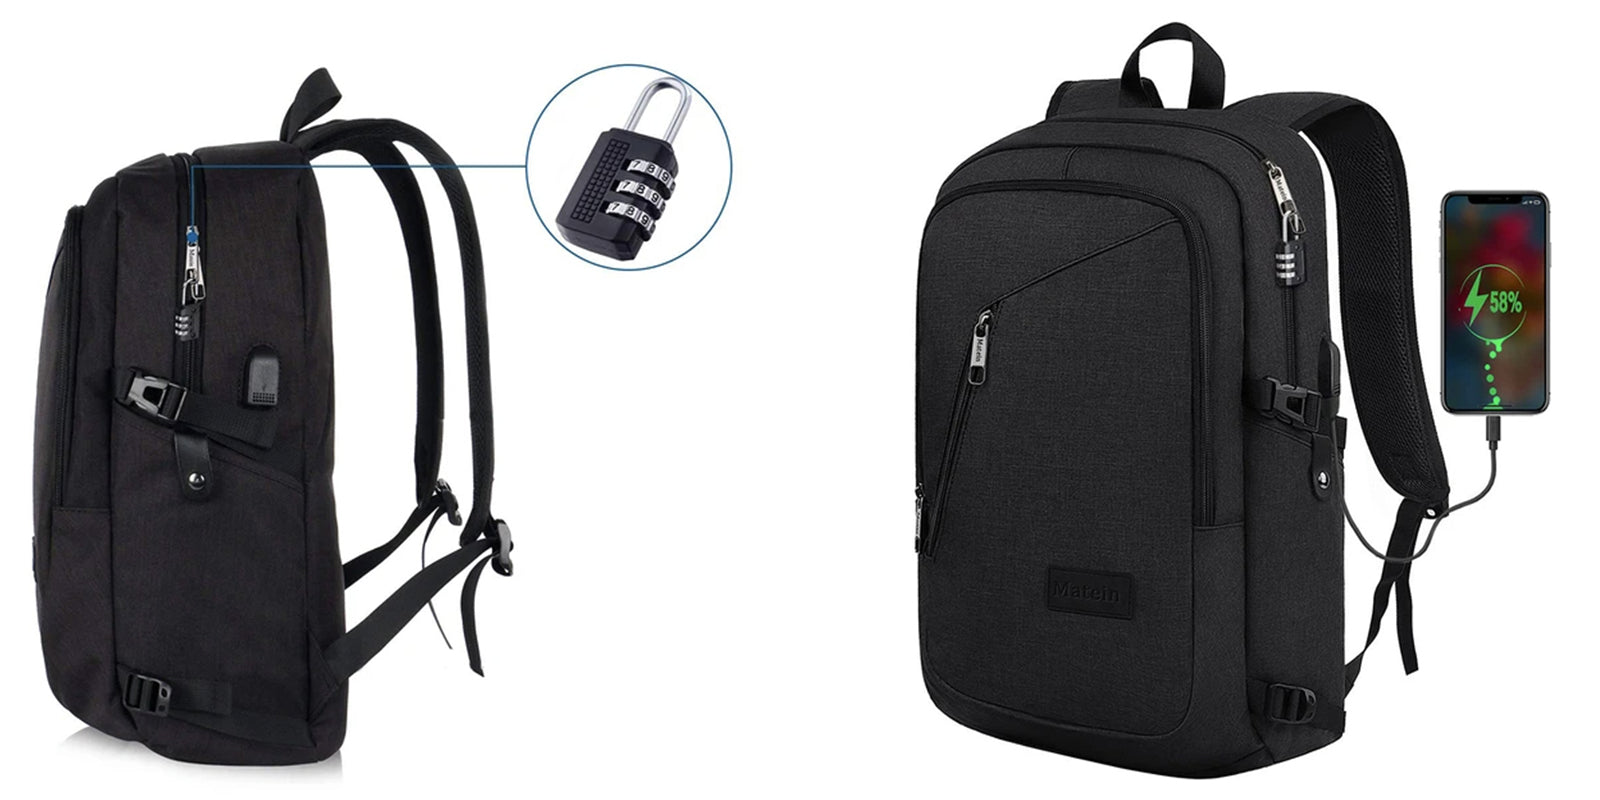 Matein Slim Laptop Backpack